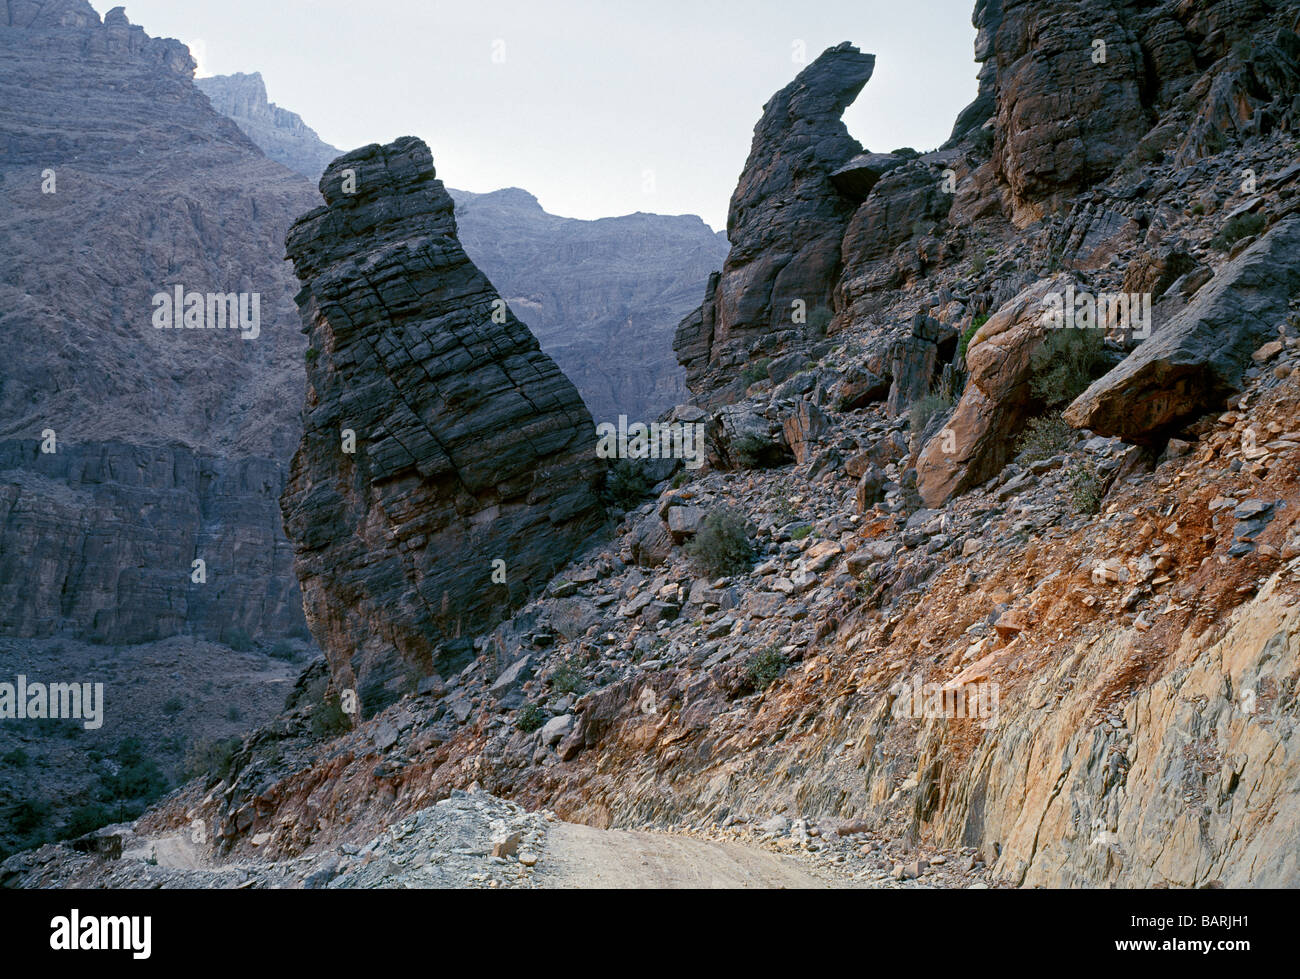 Gravel road to the village of Yasab going through the Western Hajar Mountains Schotterstrasse zum Dorf Yasab Stock Photo